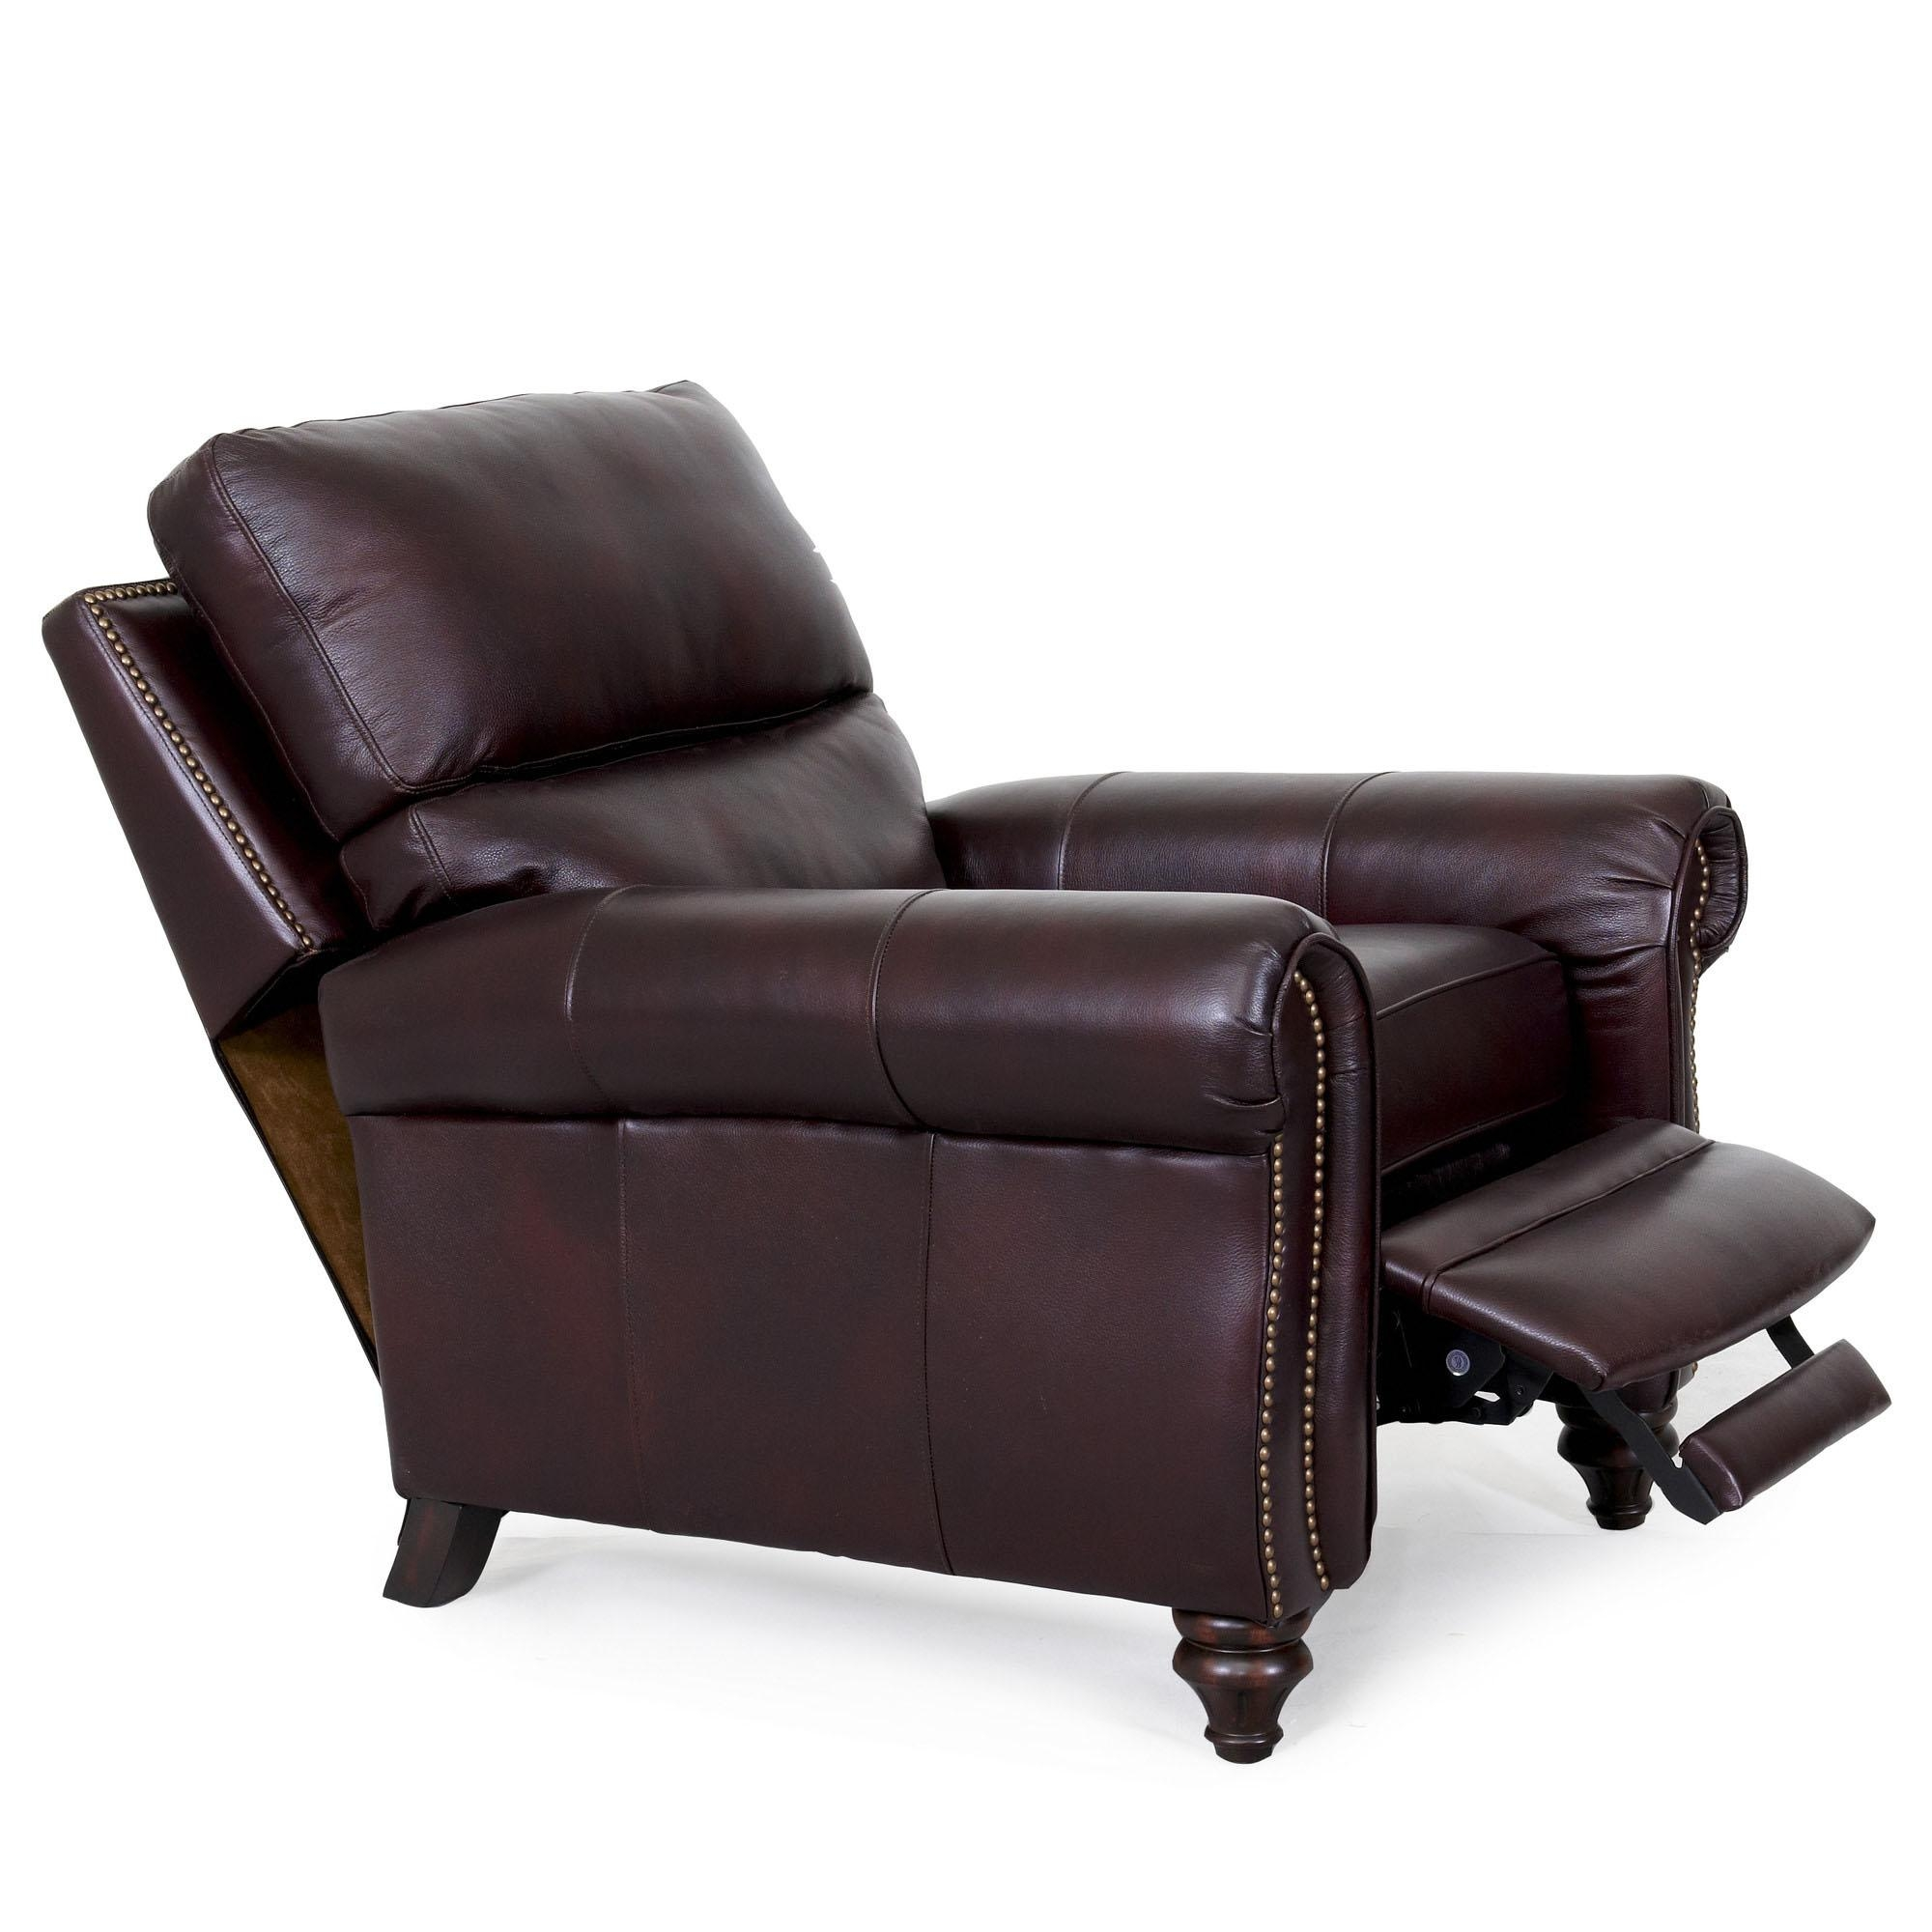 Barcalounger Dalton Ii Recliner Chair – Leather Recliner Chair Throughout Barcalounger Sofas (Image 5 of 20)